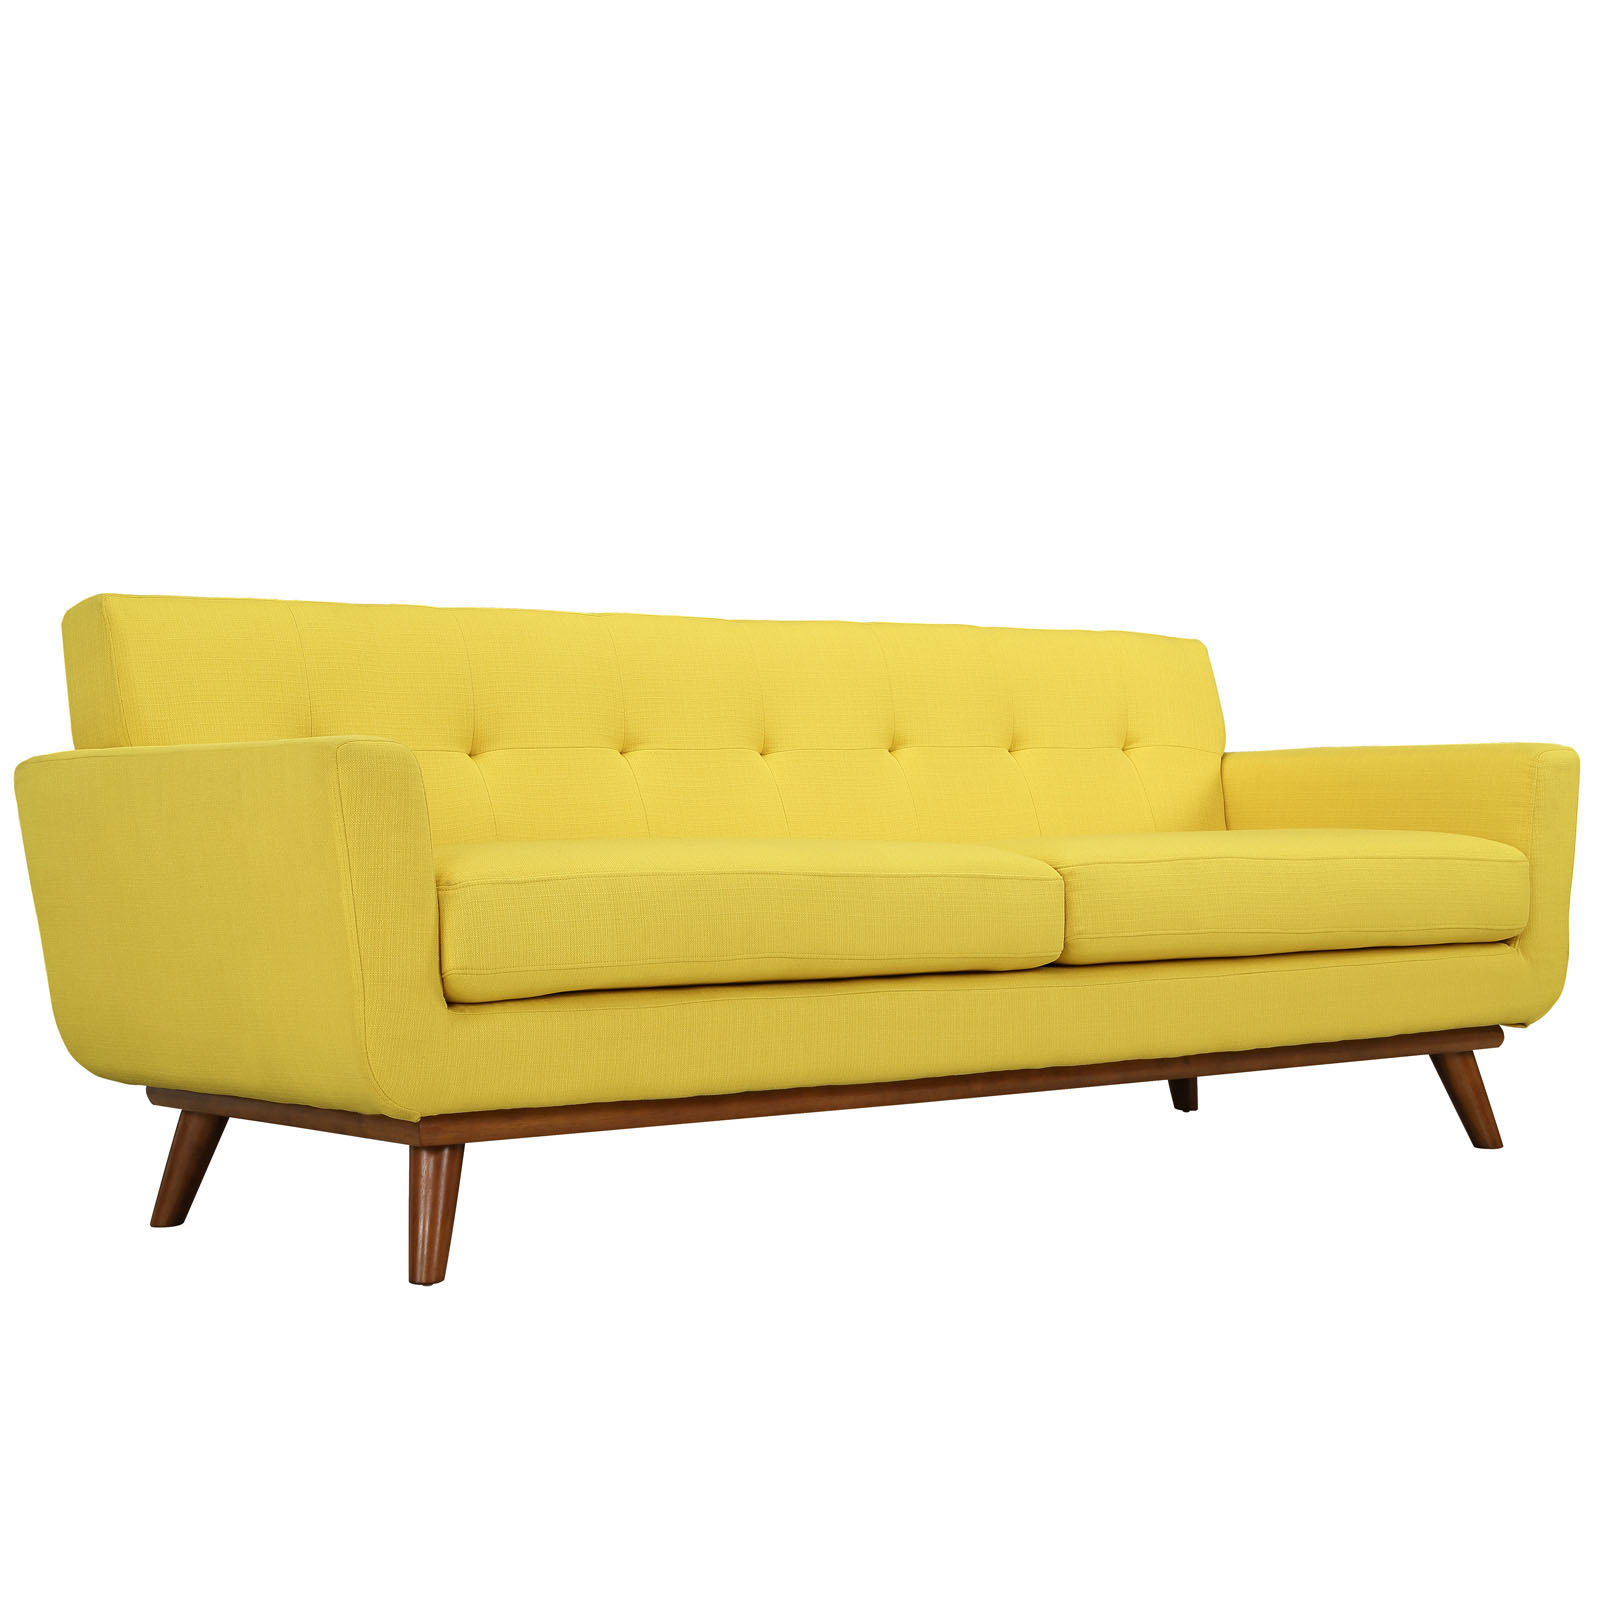 rental sofa sears canada stirling bed denmark rentals event furniture delivery